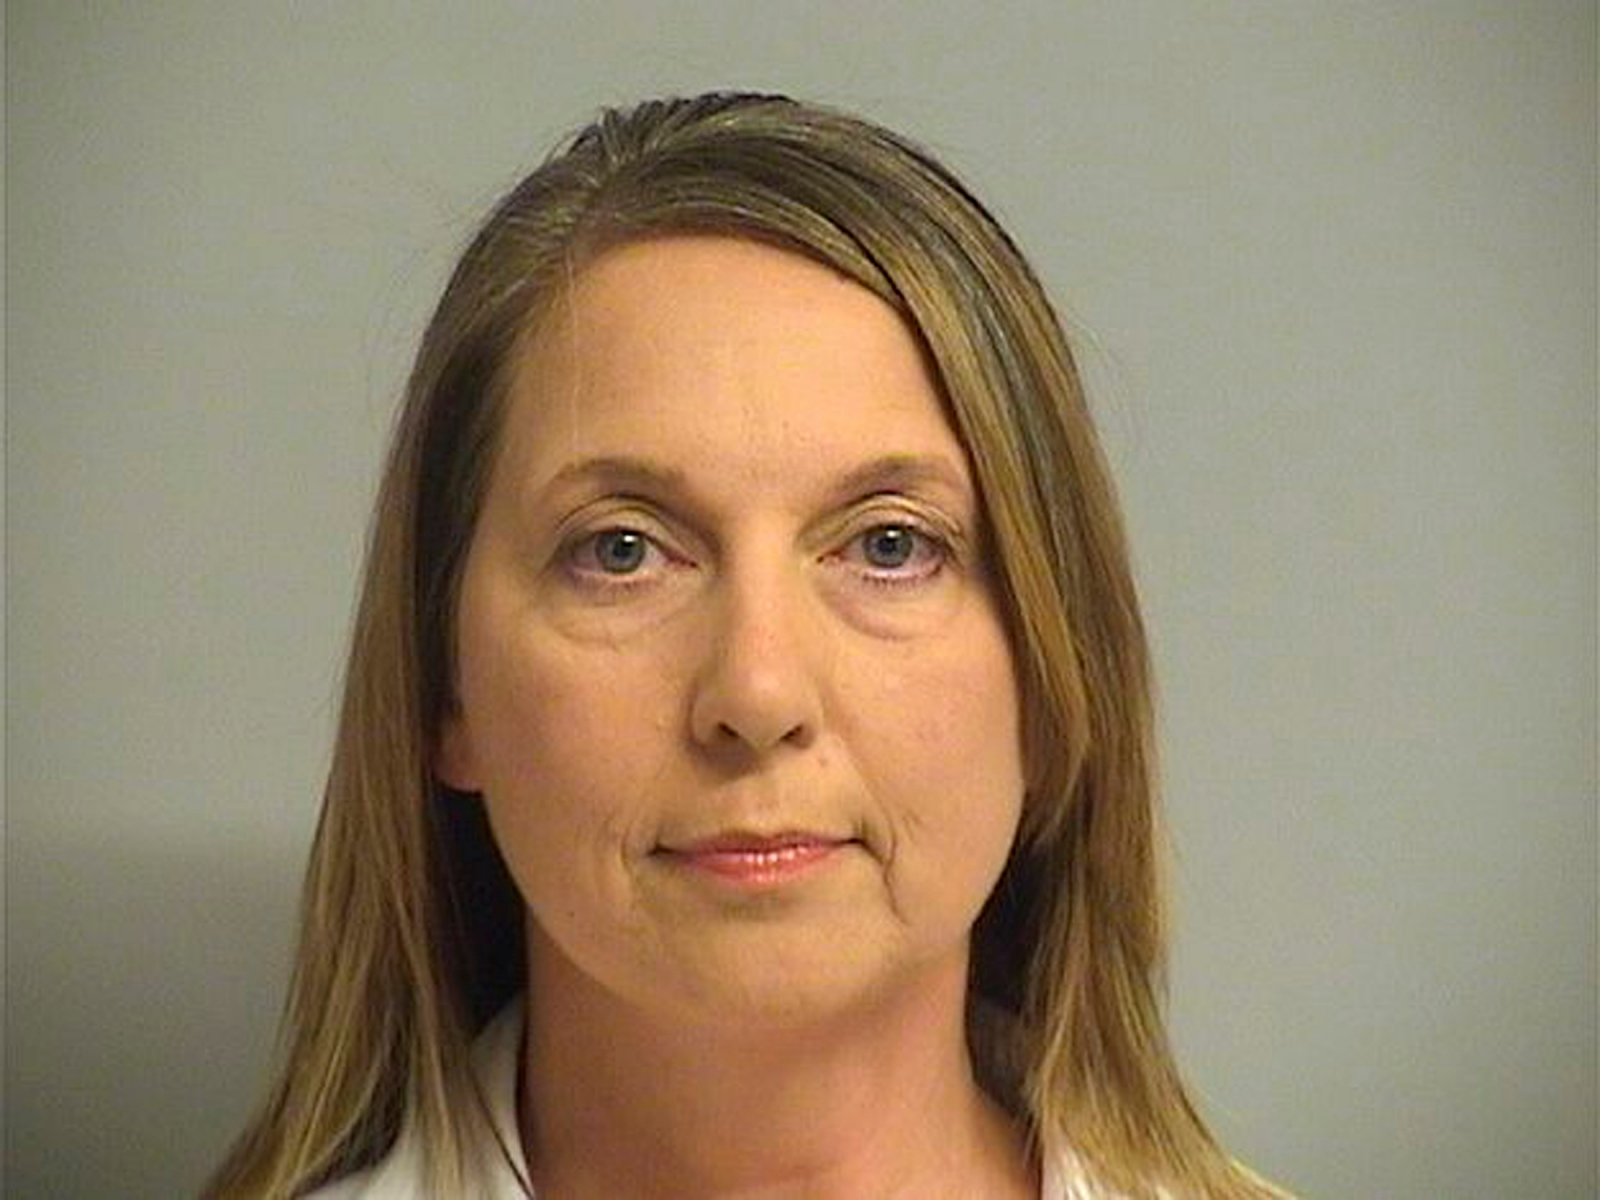 Cop who shot dead unarmed Terence Crutcher beats manslaughter charge